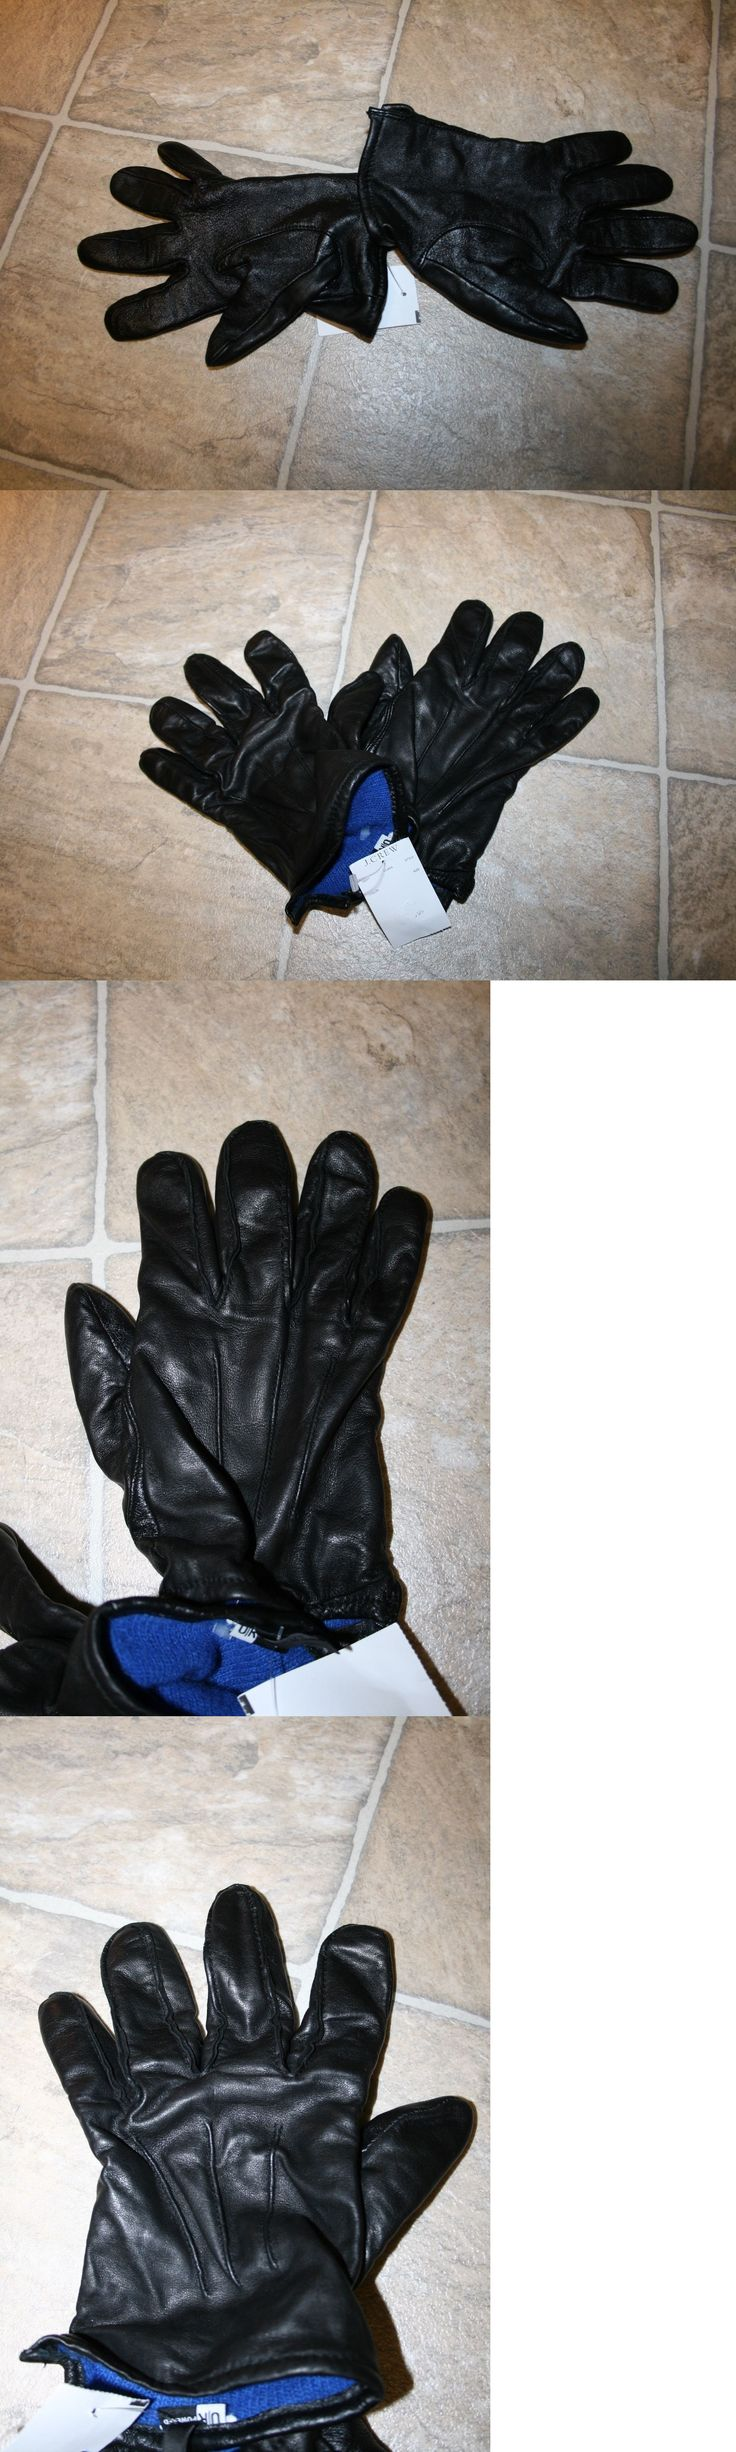 Gloves and Mittens 169278: New J. Crew Cashmere-Lined Leather Smartphone Gloves Black Size Small -> BUY IT NOW ONLY: $39.99 on eBay!